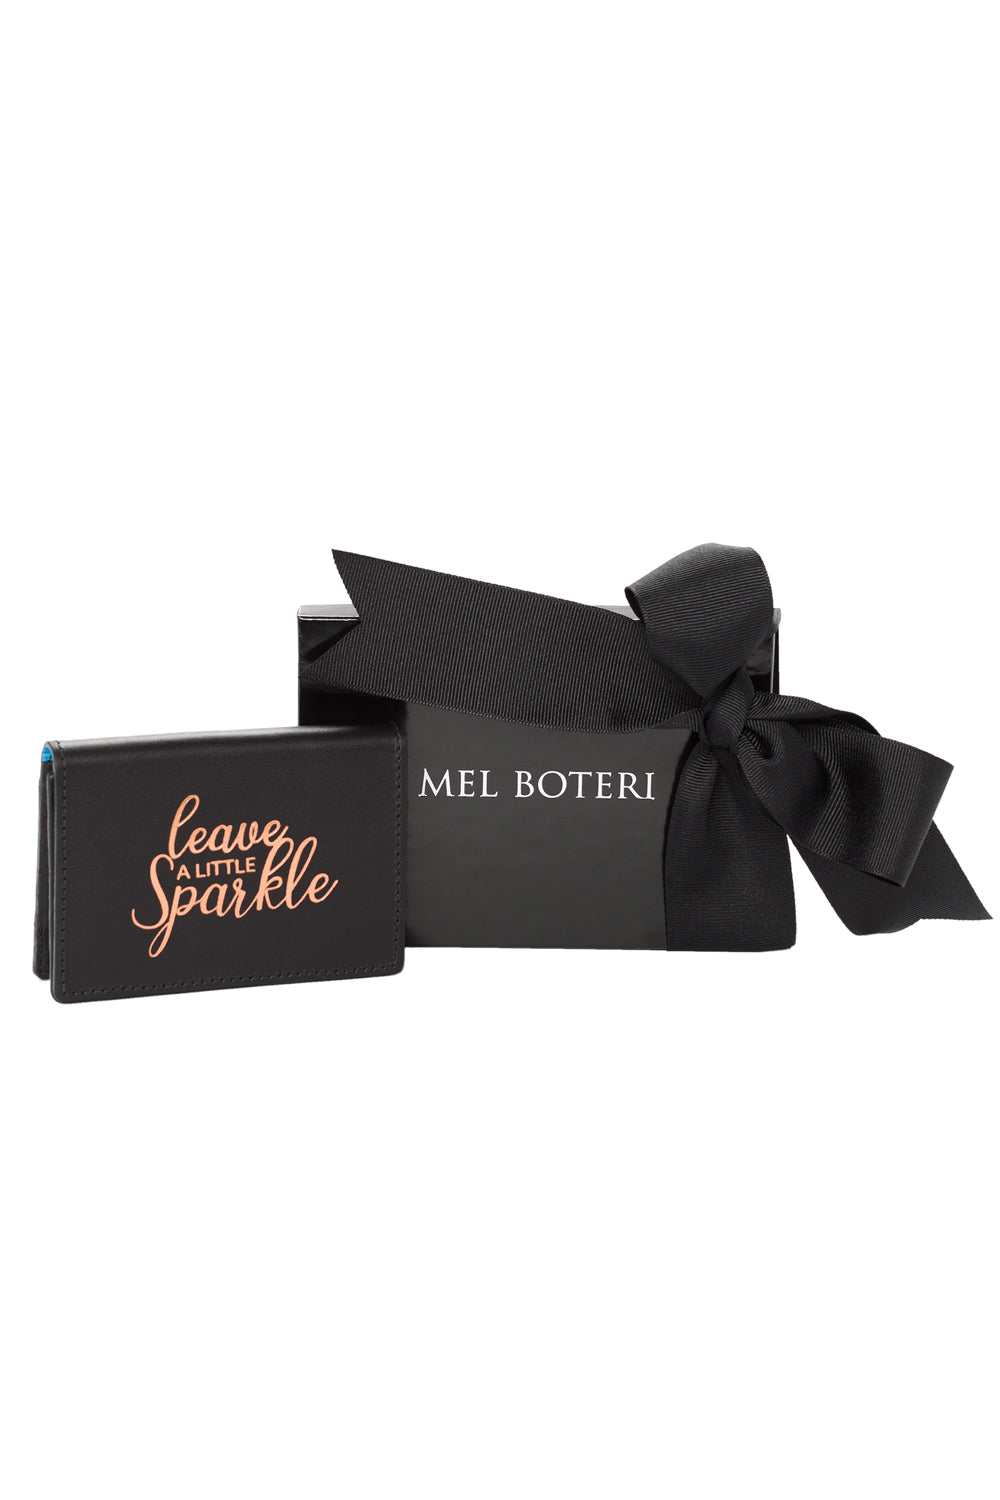 Mel Boteri | 'Leave A Little Sparkle' Cardholder | Black Leather | Signature Packaging